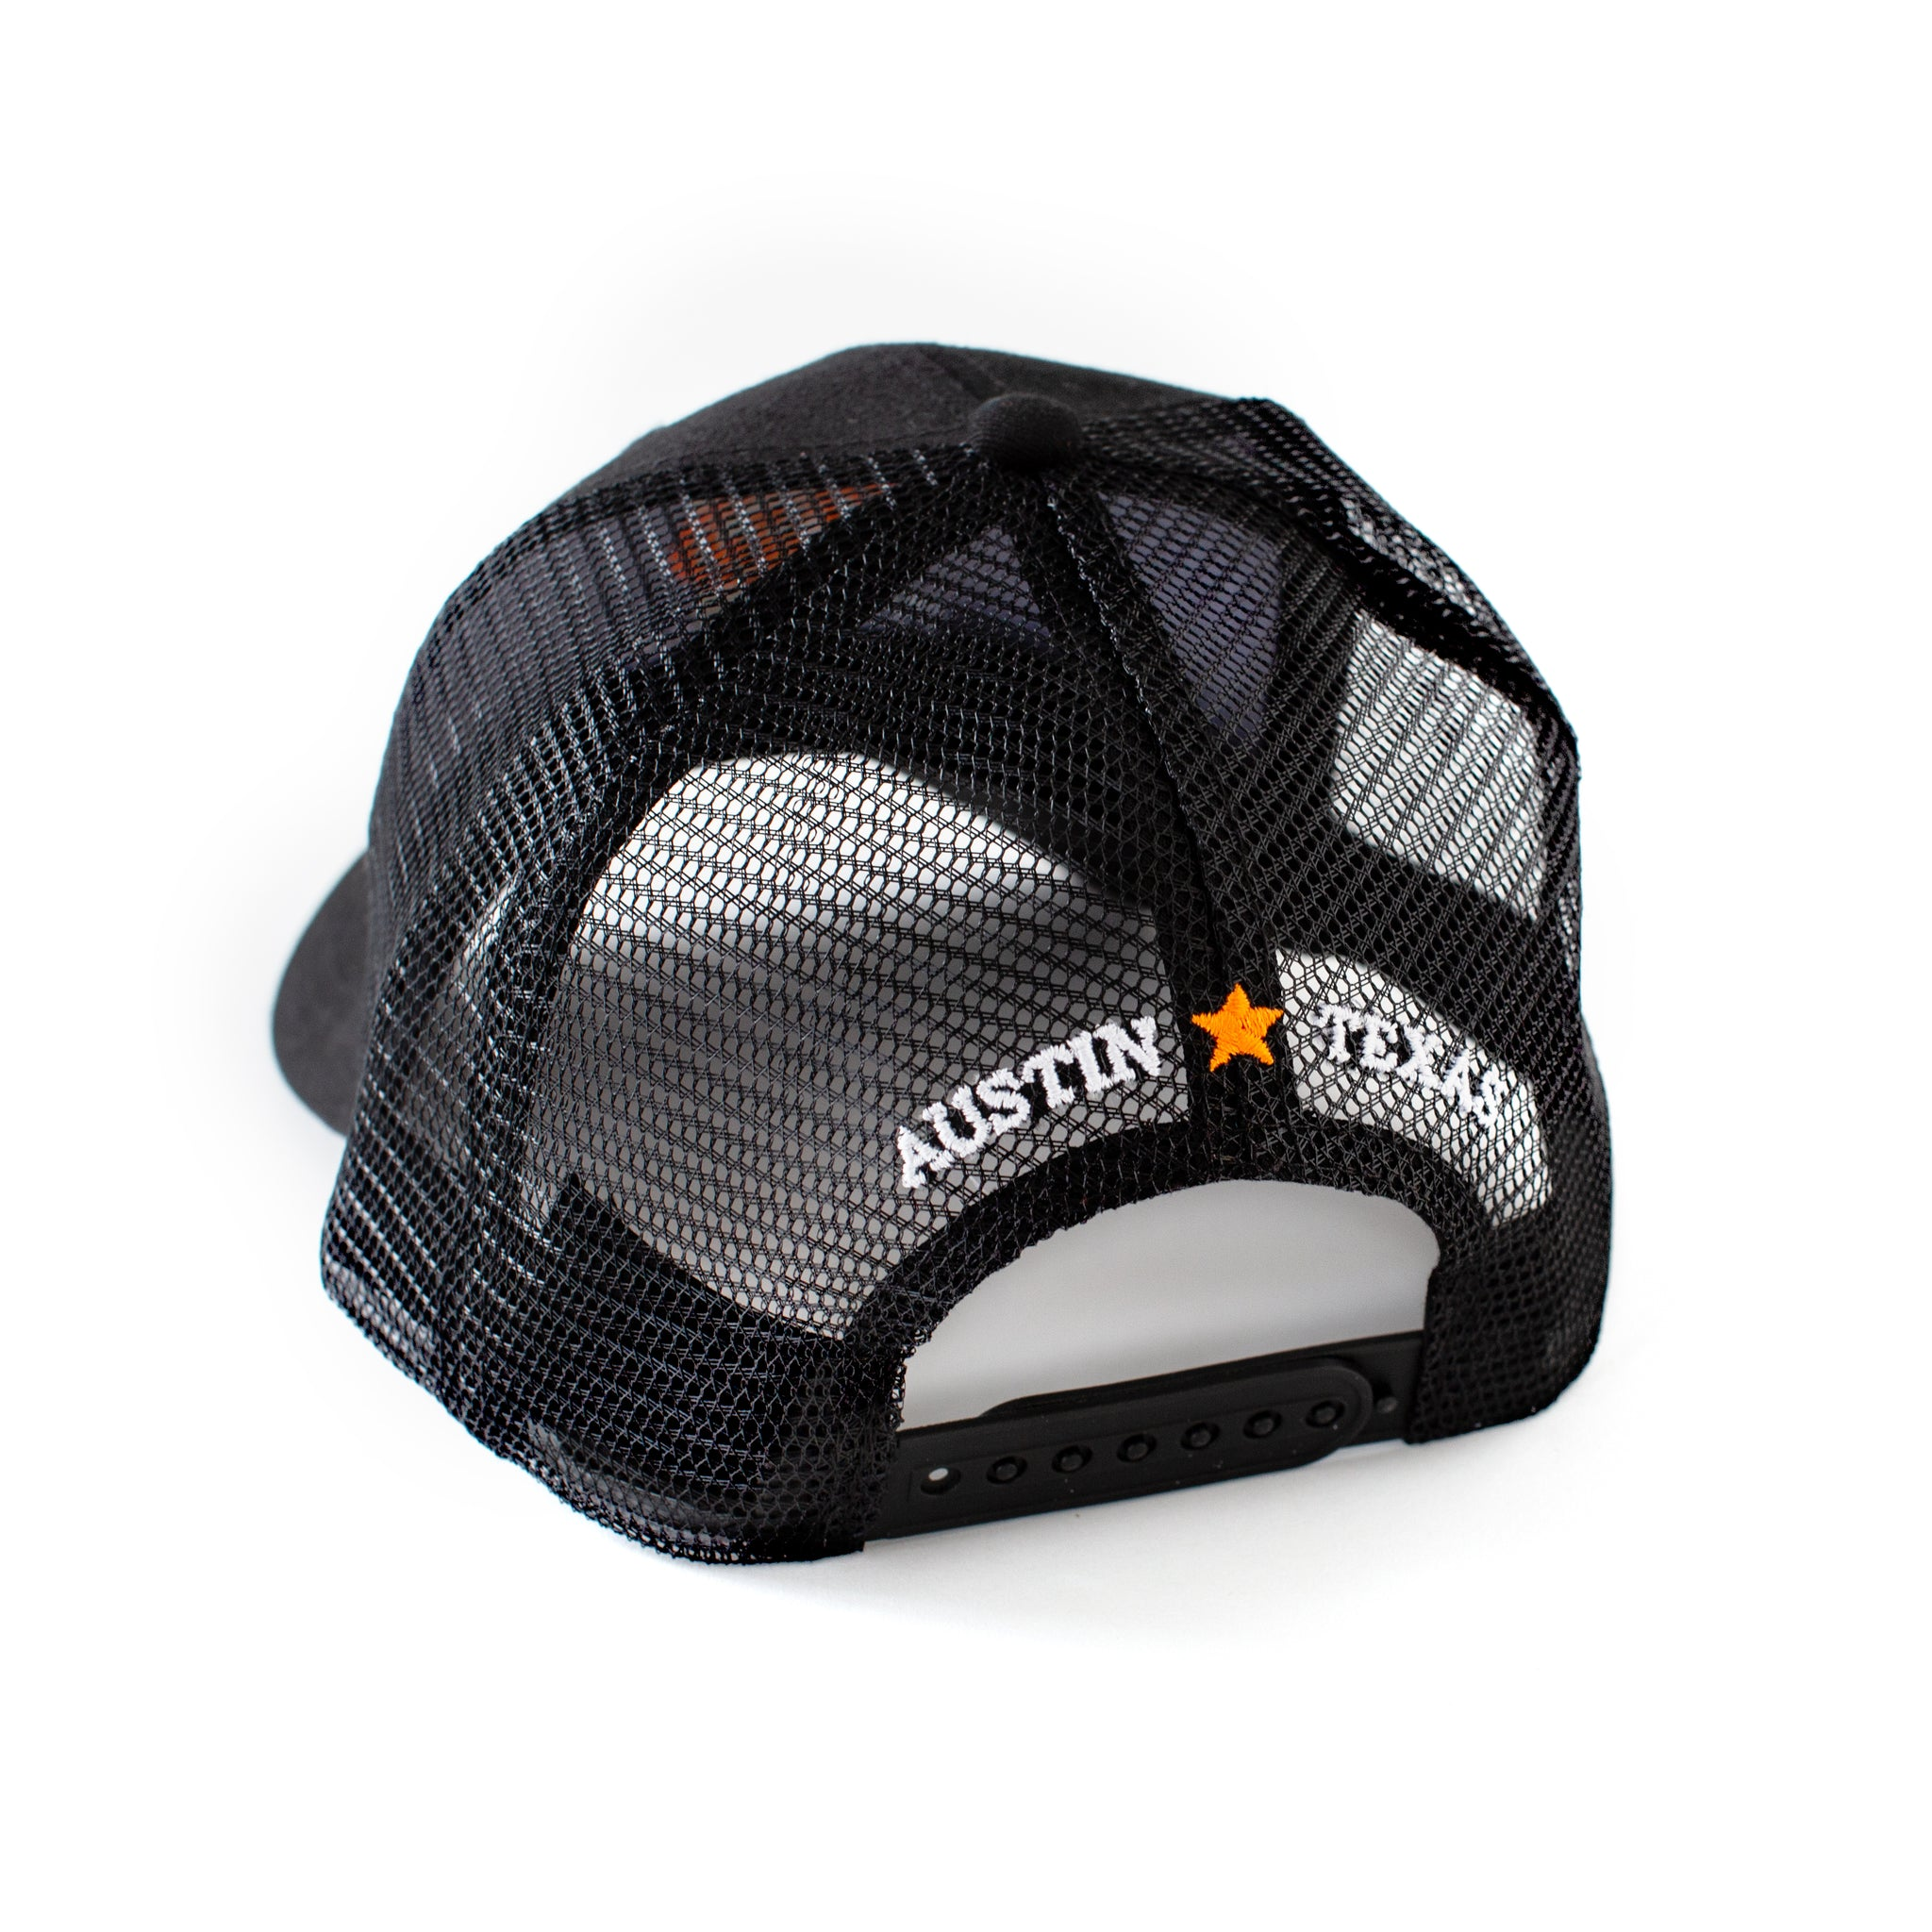 Plastic adjustable snap back closure and mesh back with Austin, Texas text